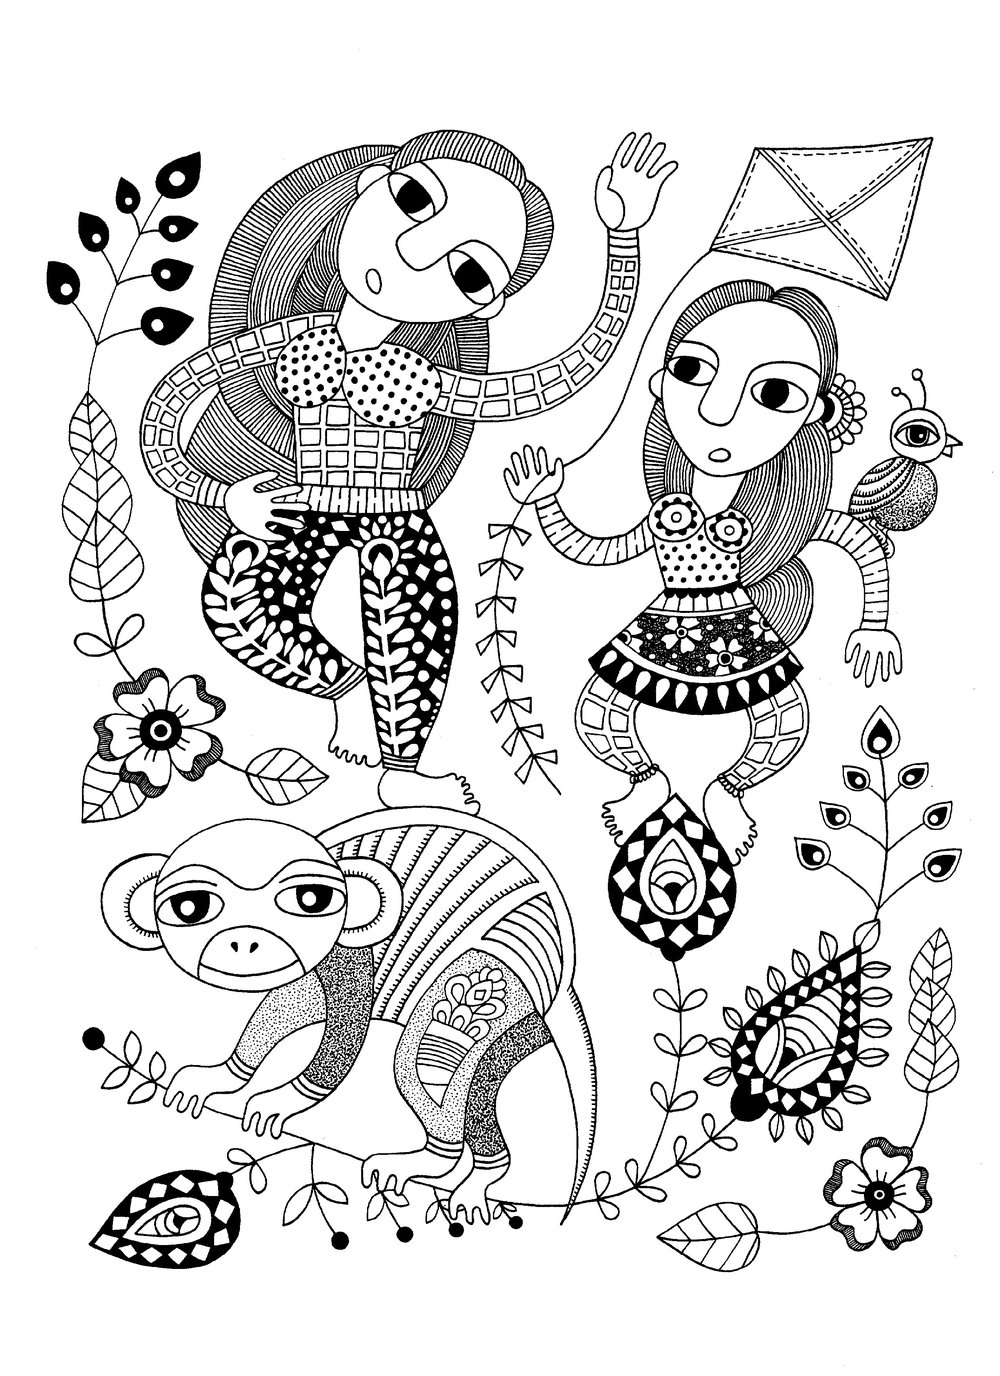 Two Girls, a Monkey, a Bird, and a Kite